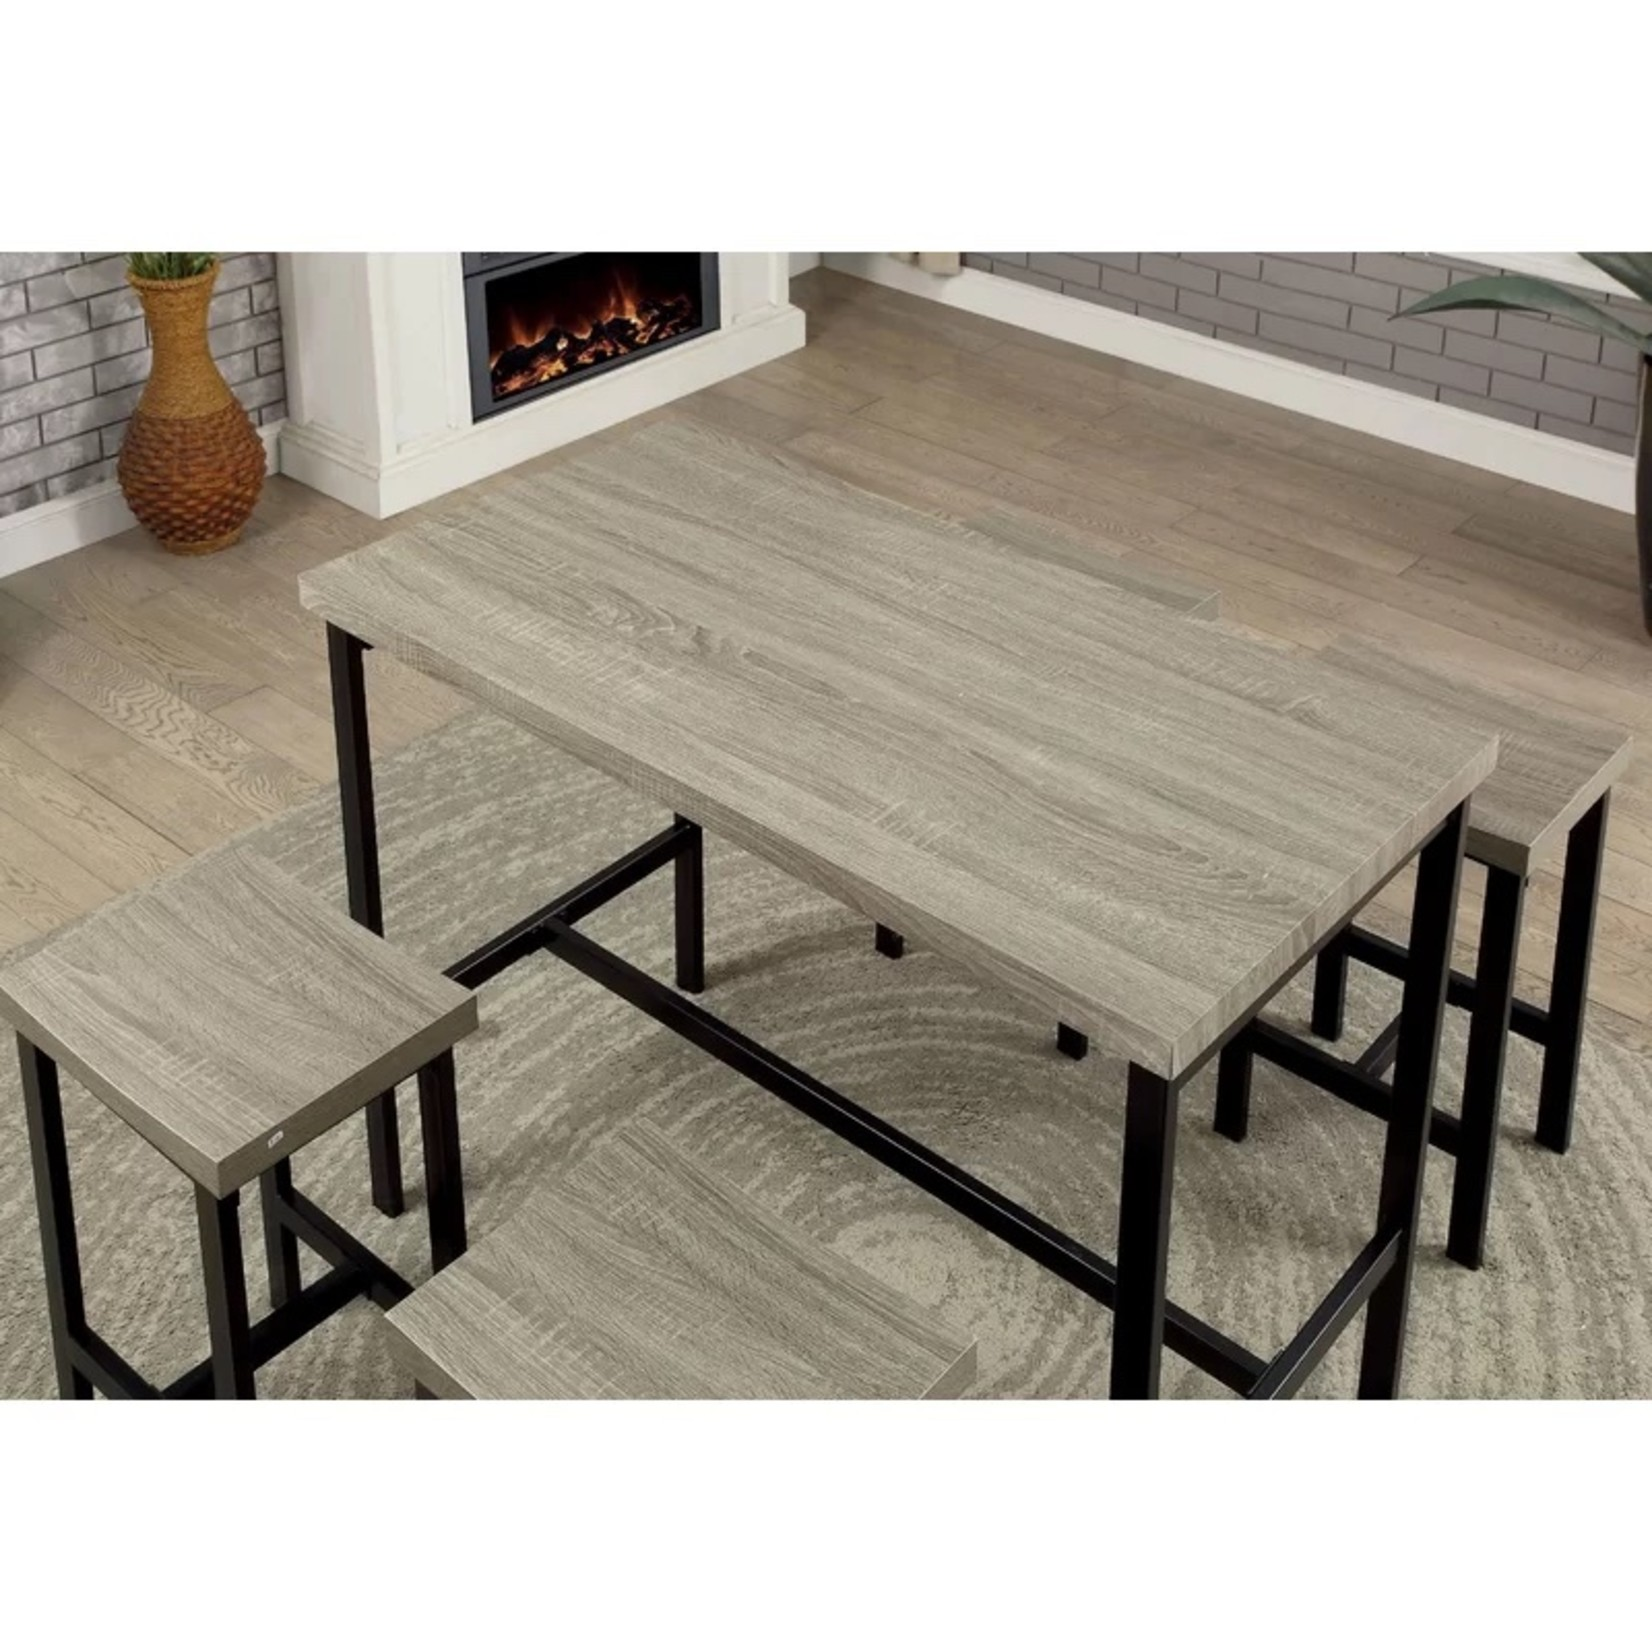 *Beveridge 5 Piece Dining Set